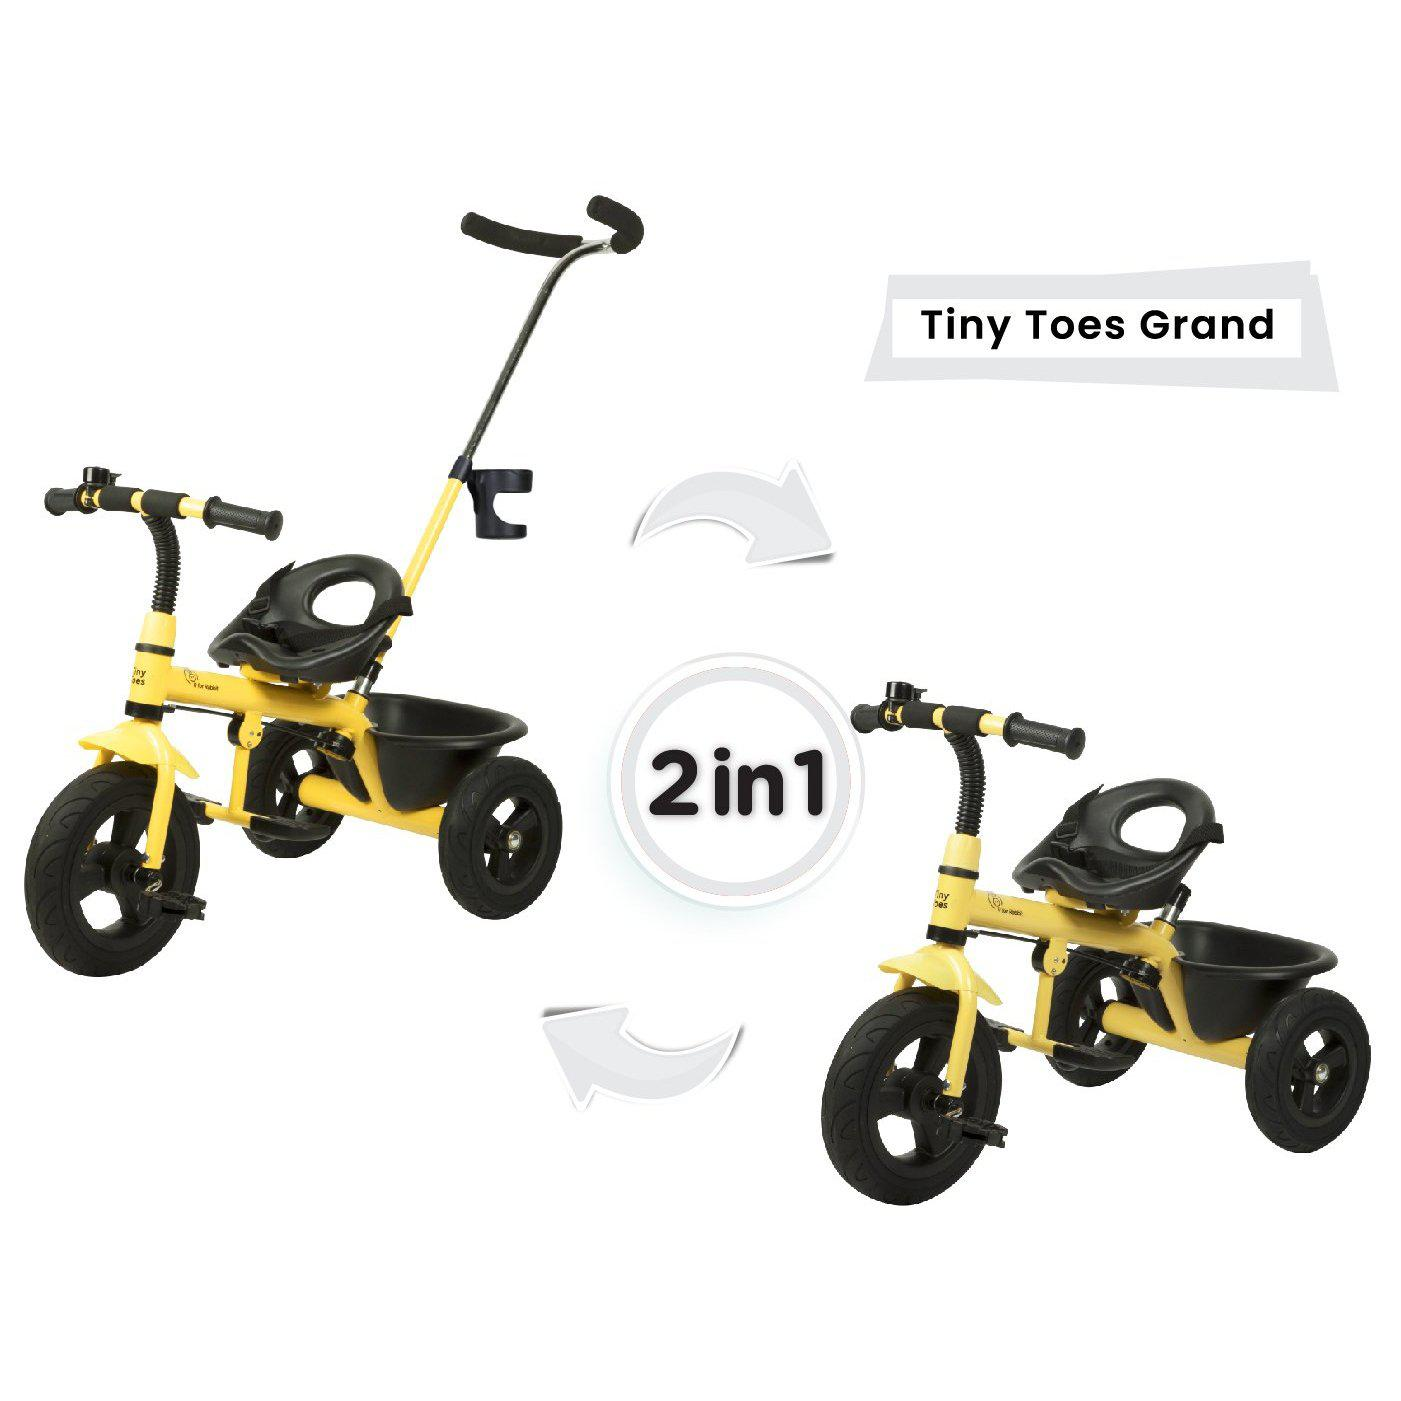 R for Rabbit Tiny Toes Grand Baby Tricycle for Kids with Parental Control for 1.5 to 5 Years Kids